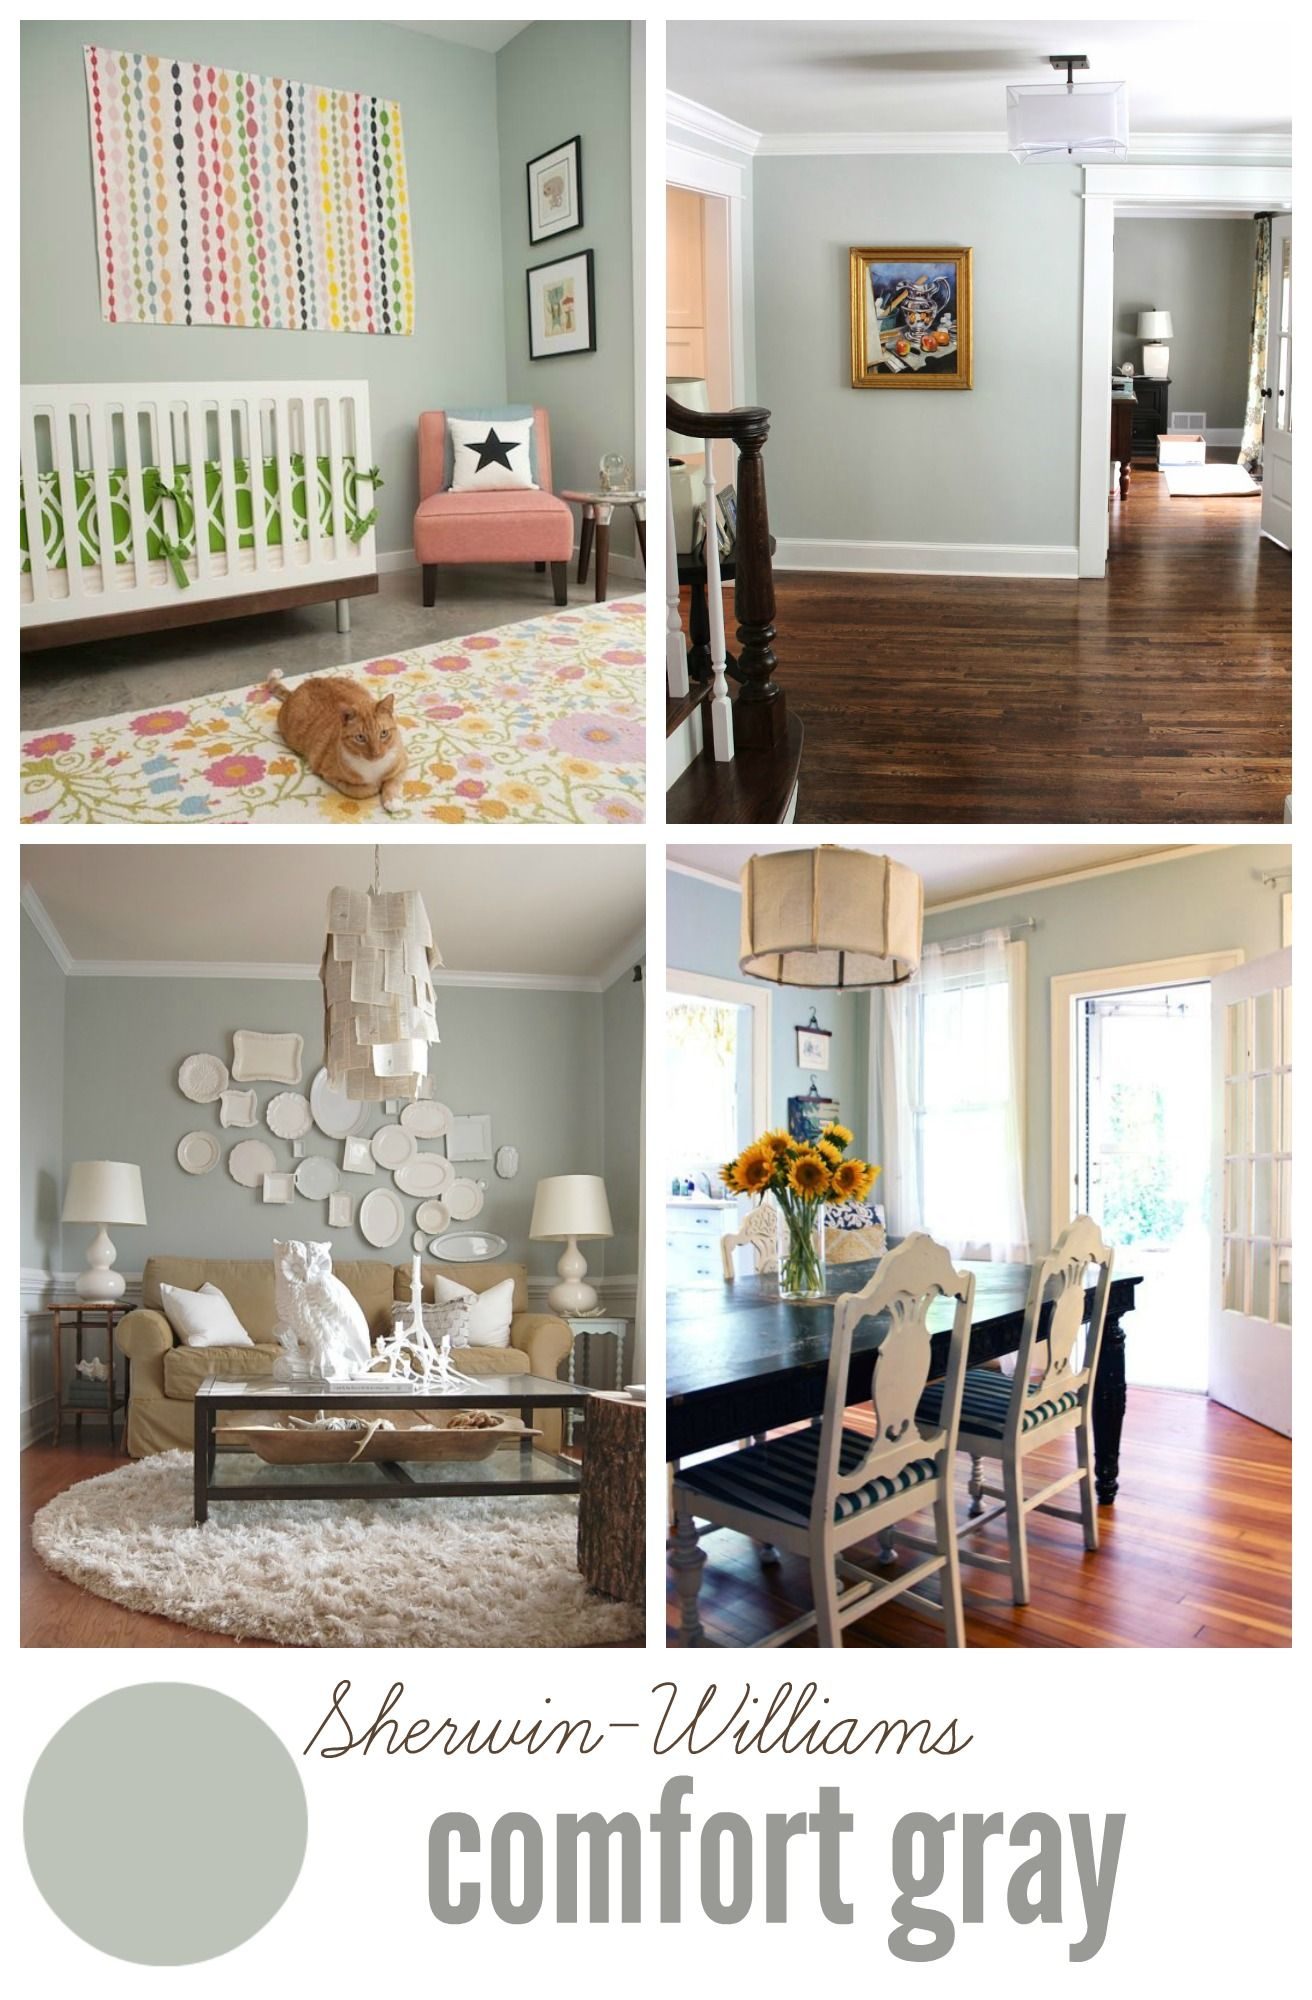 Choosing neutral paint colors paint the walls and more - Sherwin williams comfort gray living room ...